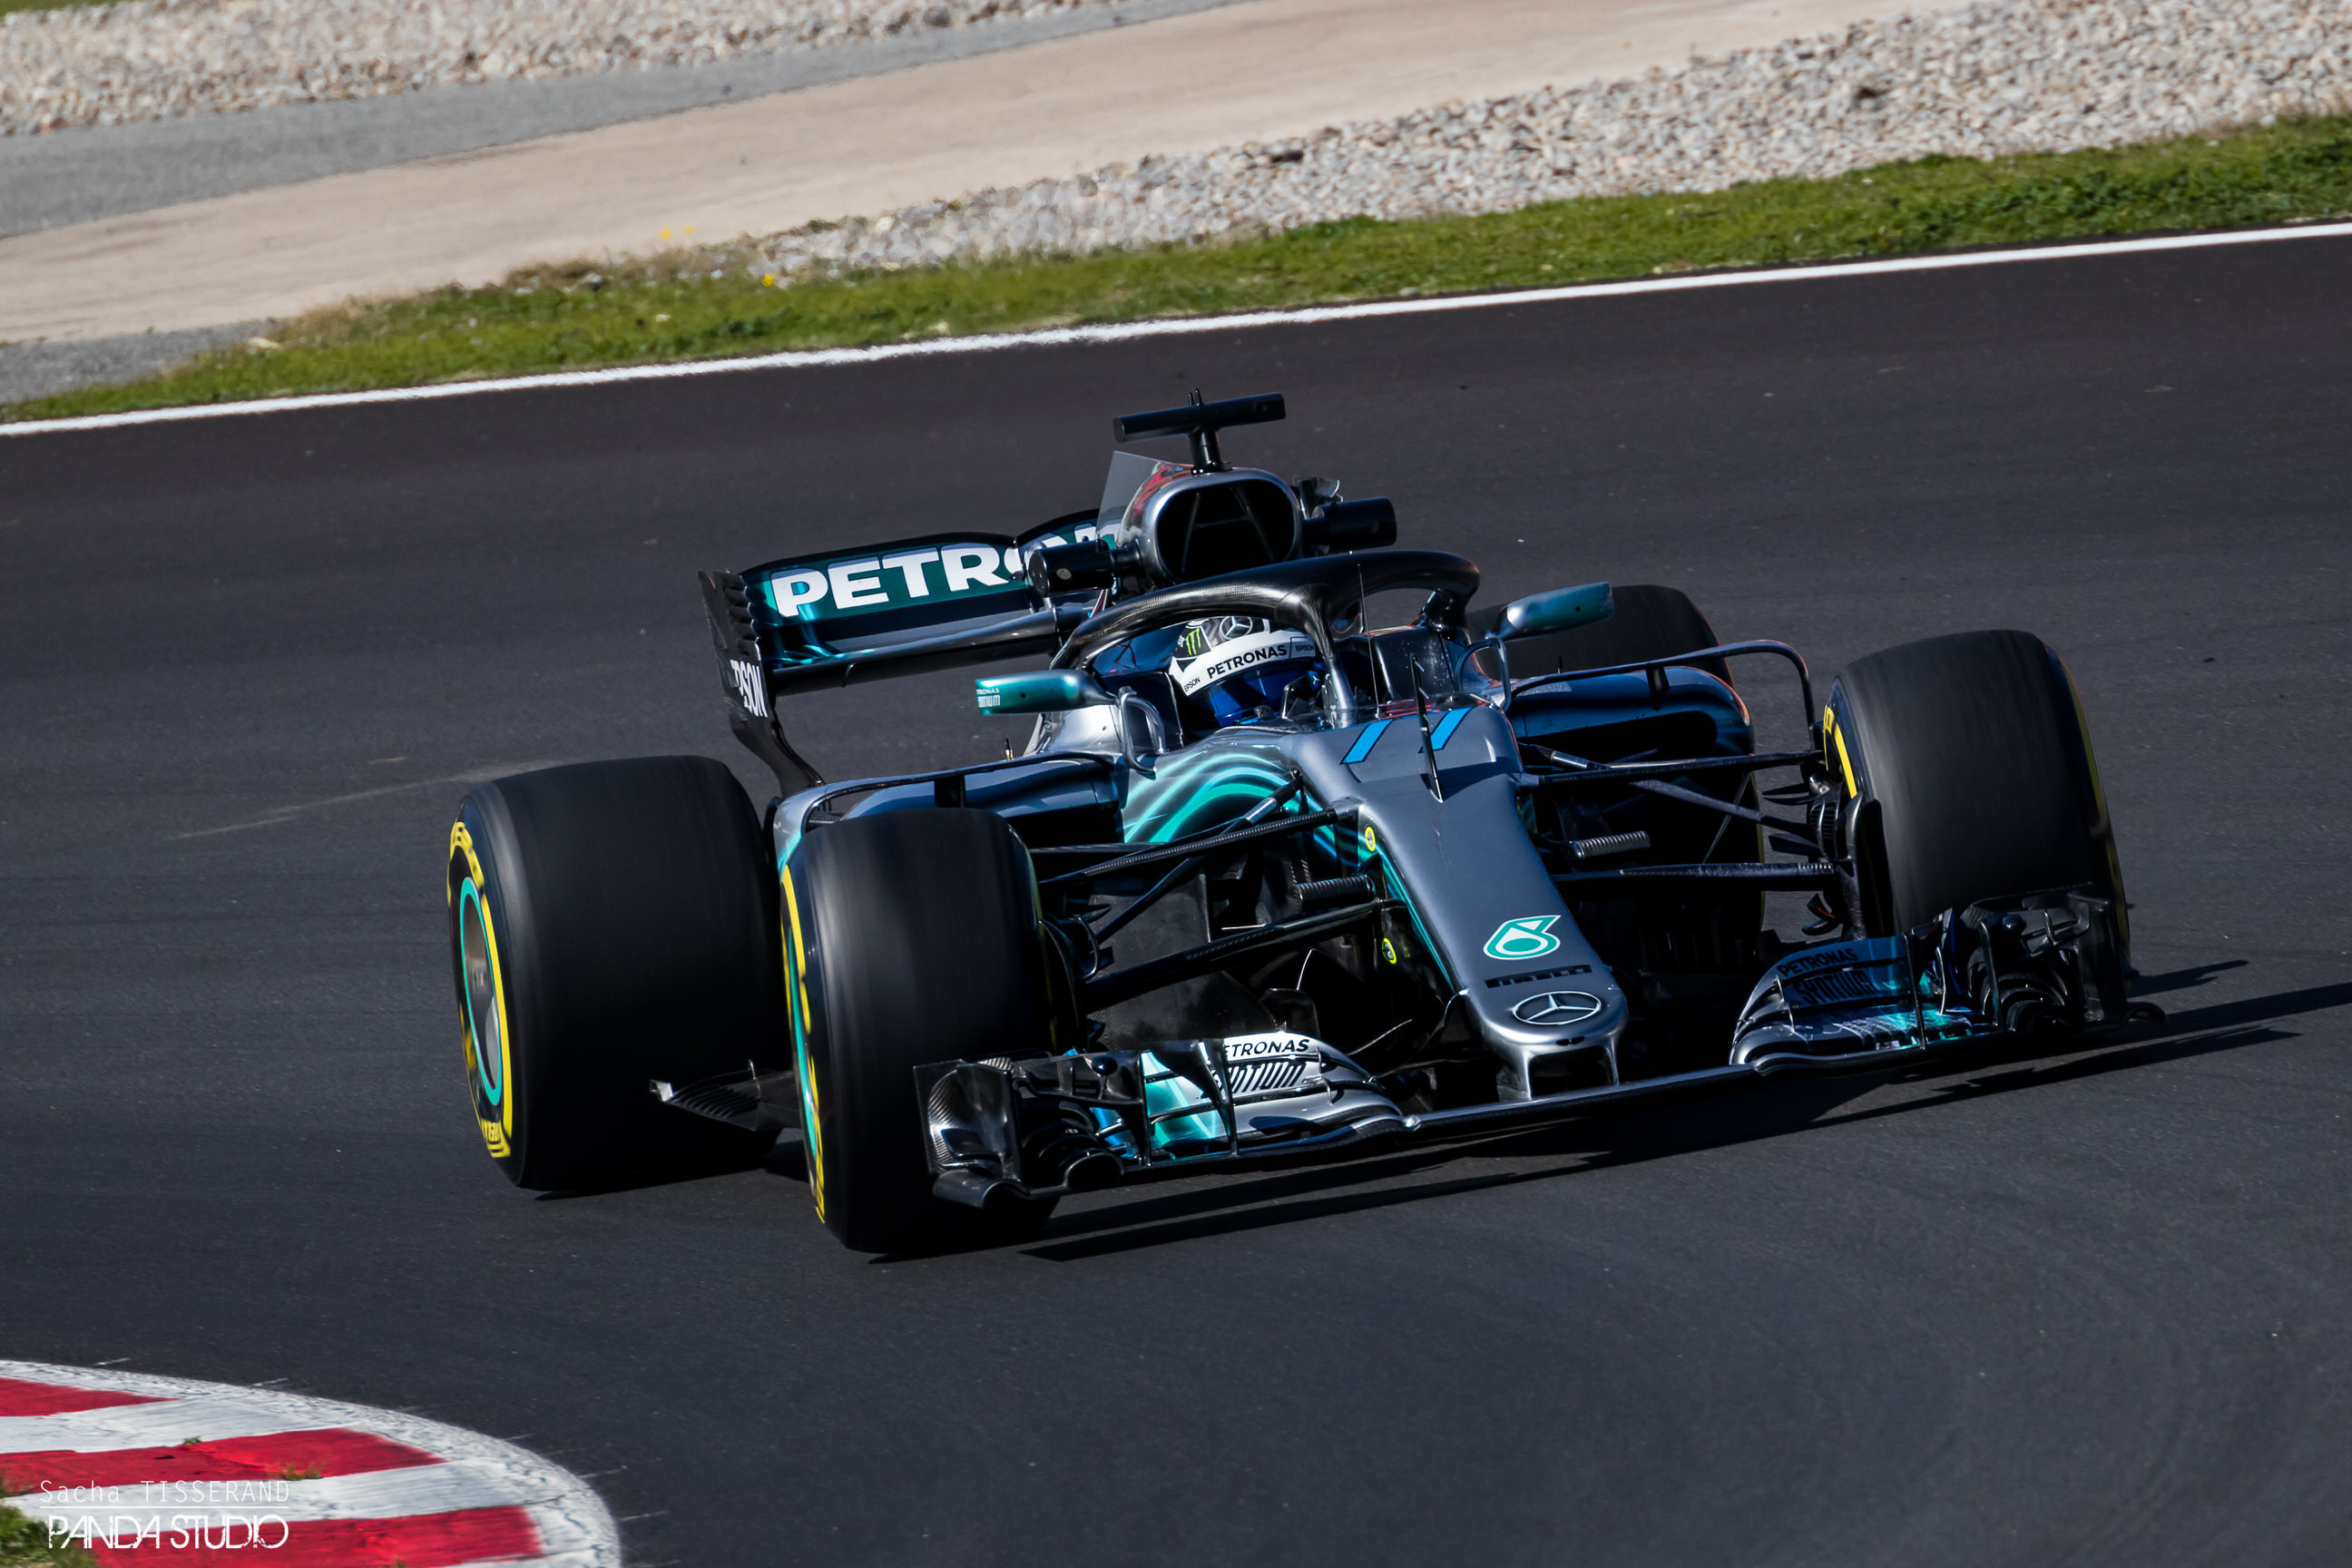 Valteri Bottas - Tests hivernaux Barcelone 2018